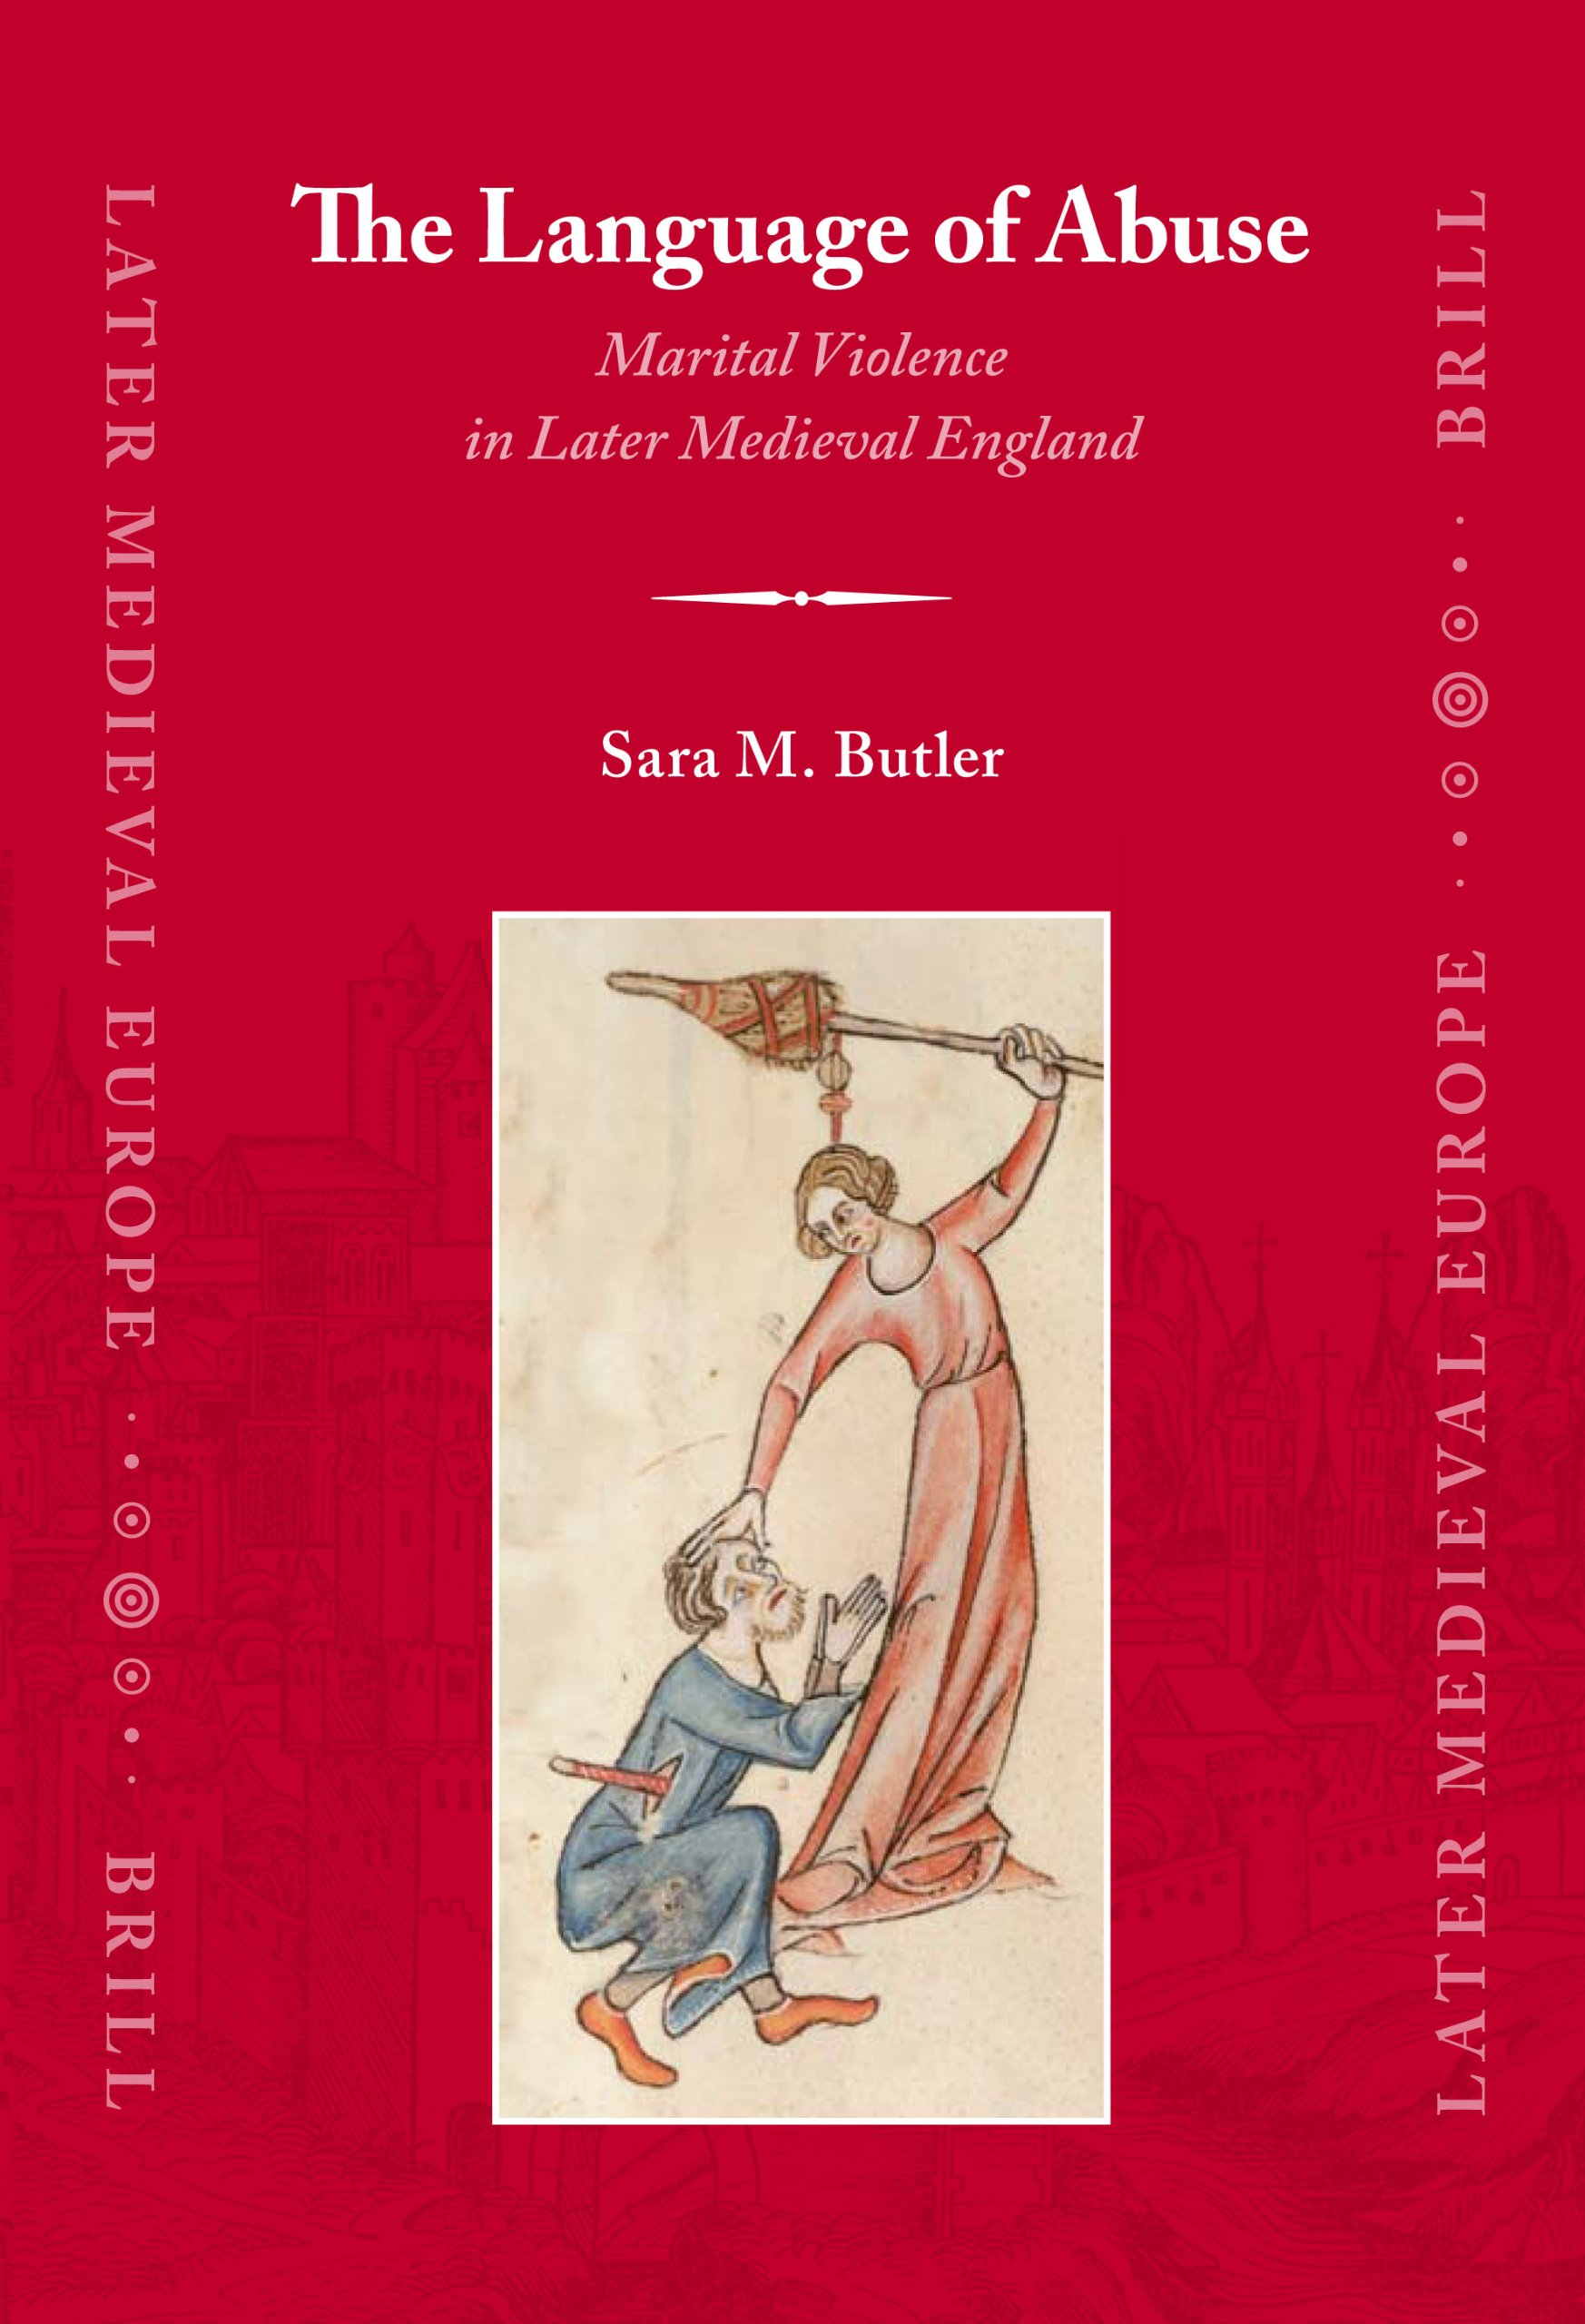 The Language of Abuse (Late Medieval Europe) by BRILL